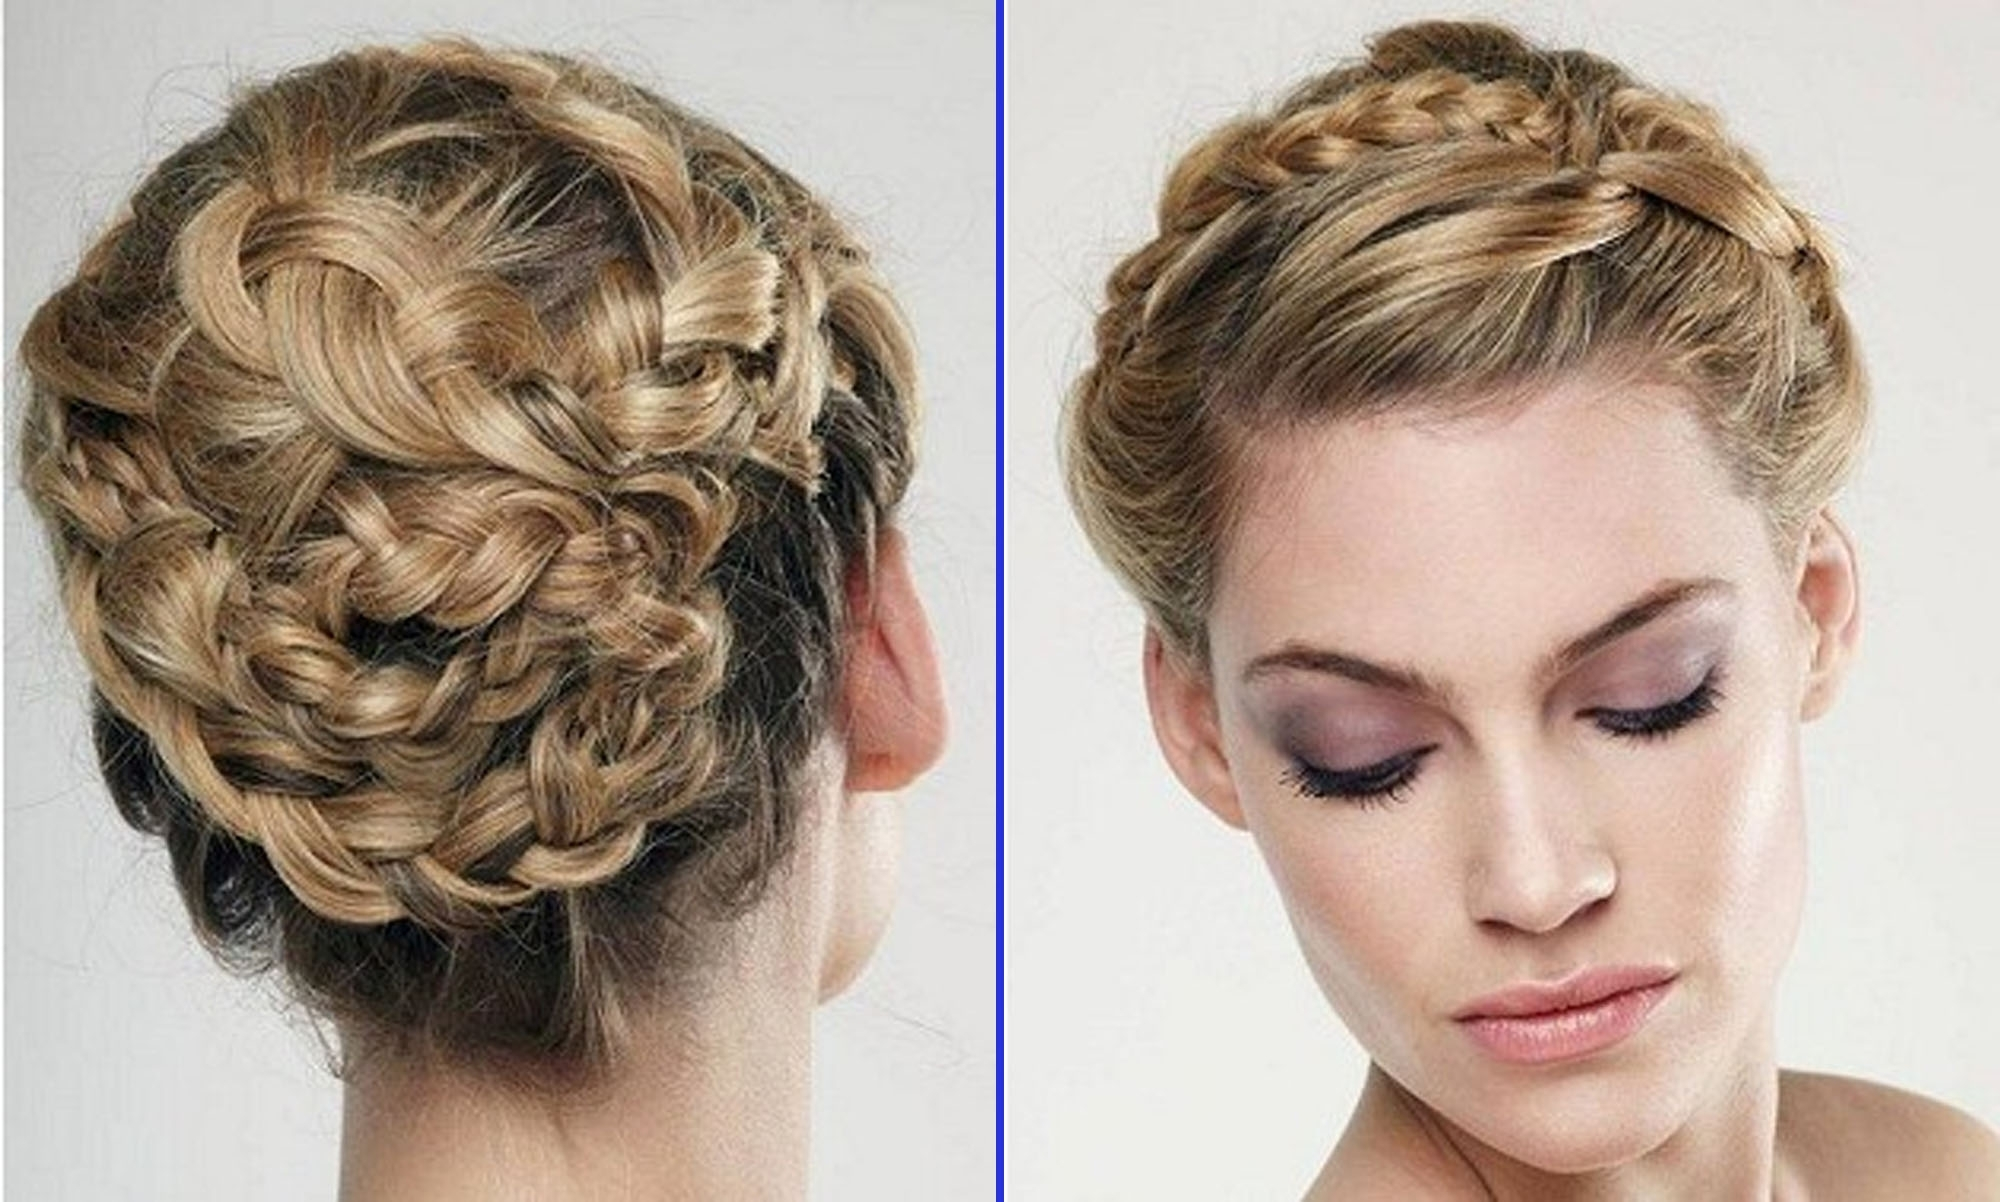 Braided Updo Hairstyles Wedding For Women Hairdresser | Medium Hair Throughout Braided Hair Updo Hairstyles (View 11 of 15)